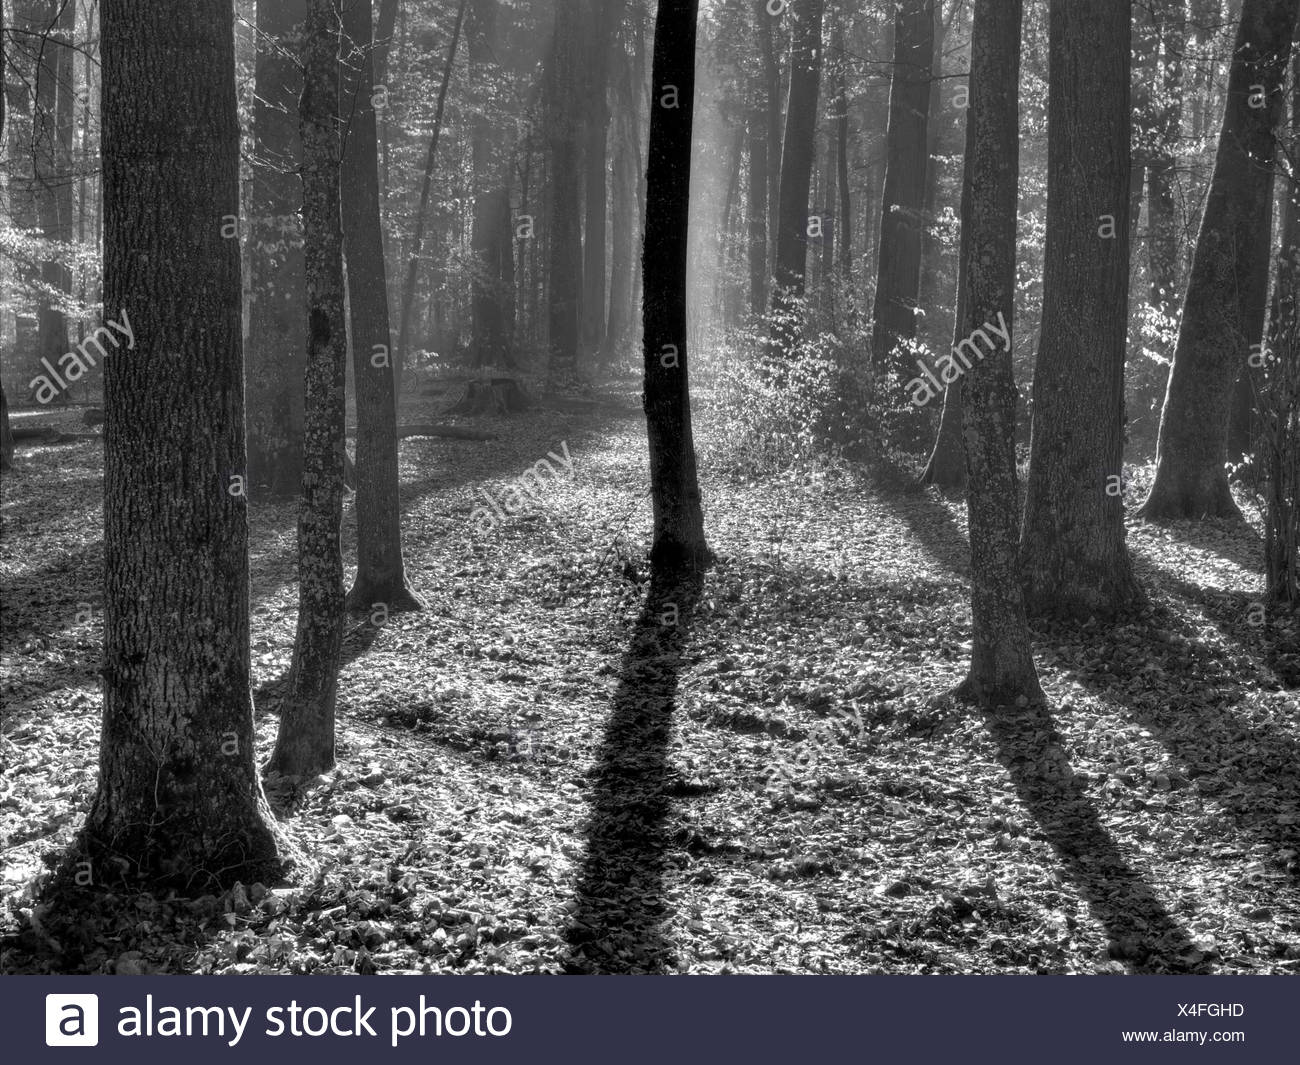 Switzerland, Europe, canton Zurich, leaves, wood, forest, beeches, autumn, contrast, light, shade, sun, foliage - Stock Image